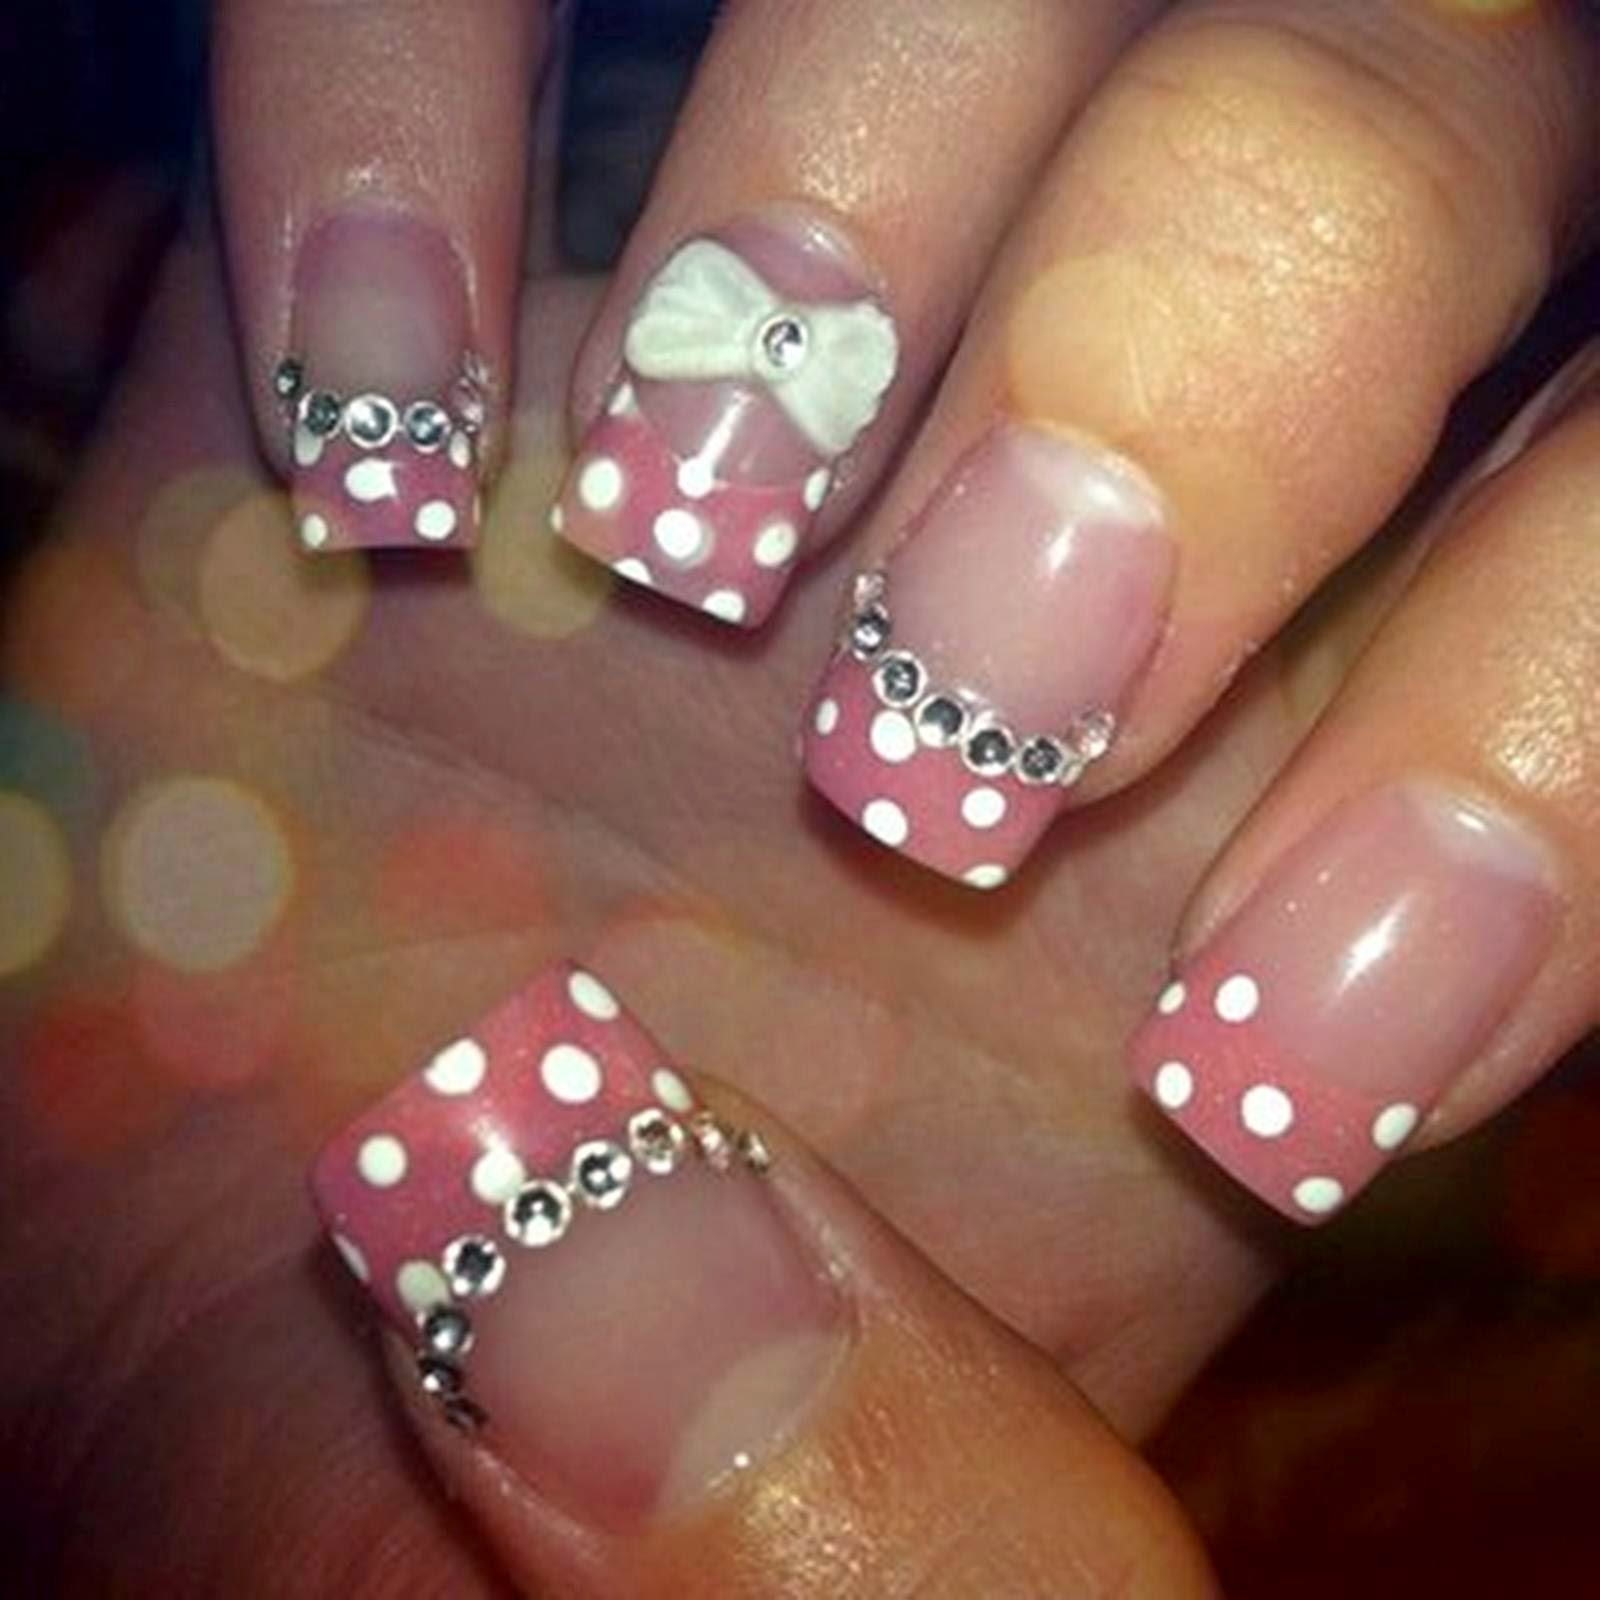 Acrylic nail designs nail art and tattoo design ideas for Acrylic nail decoration